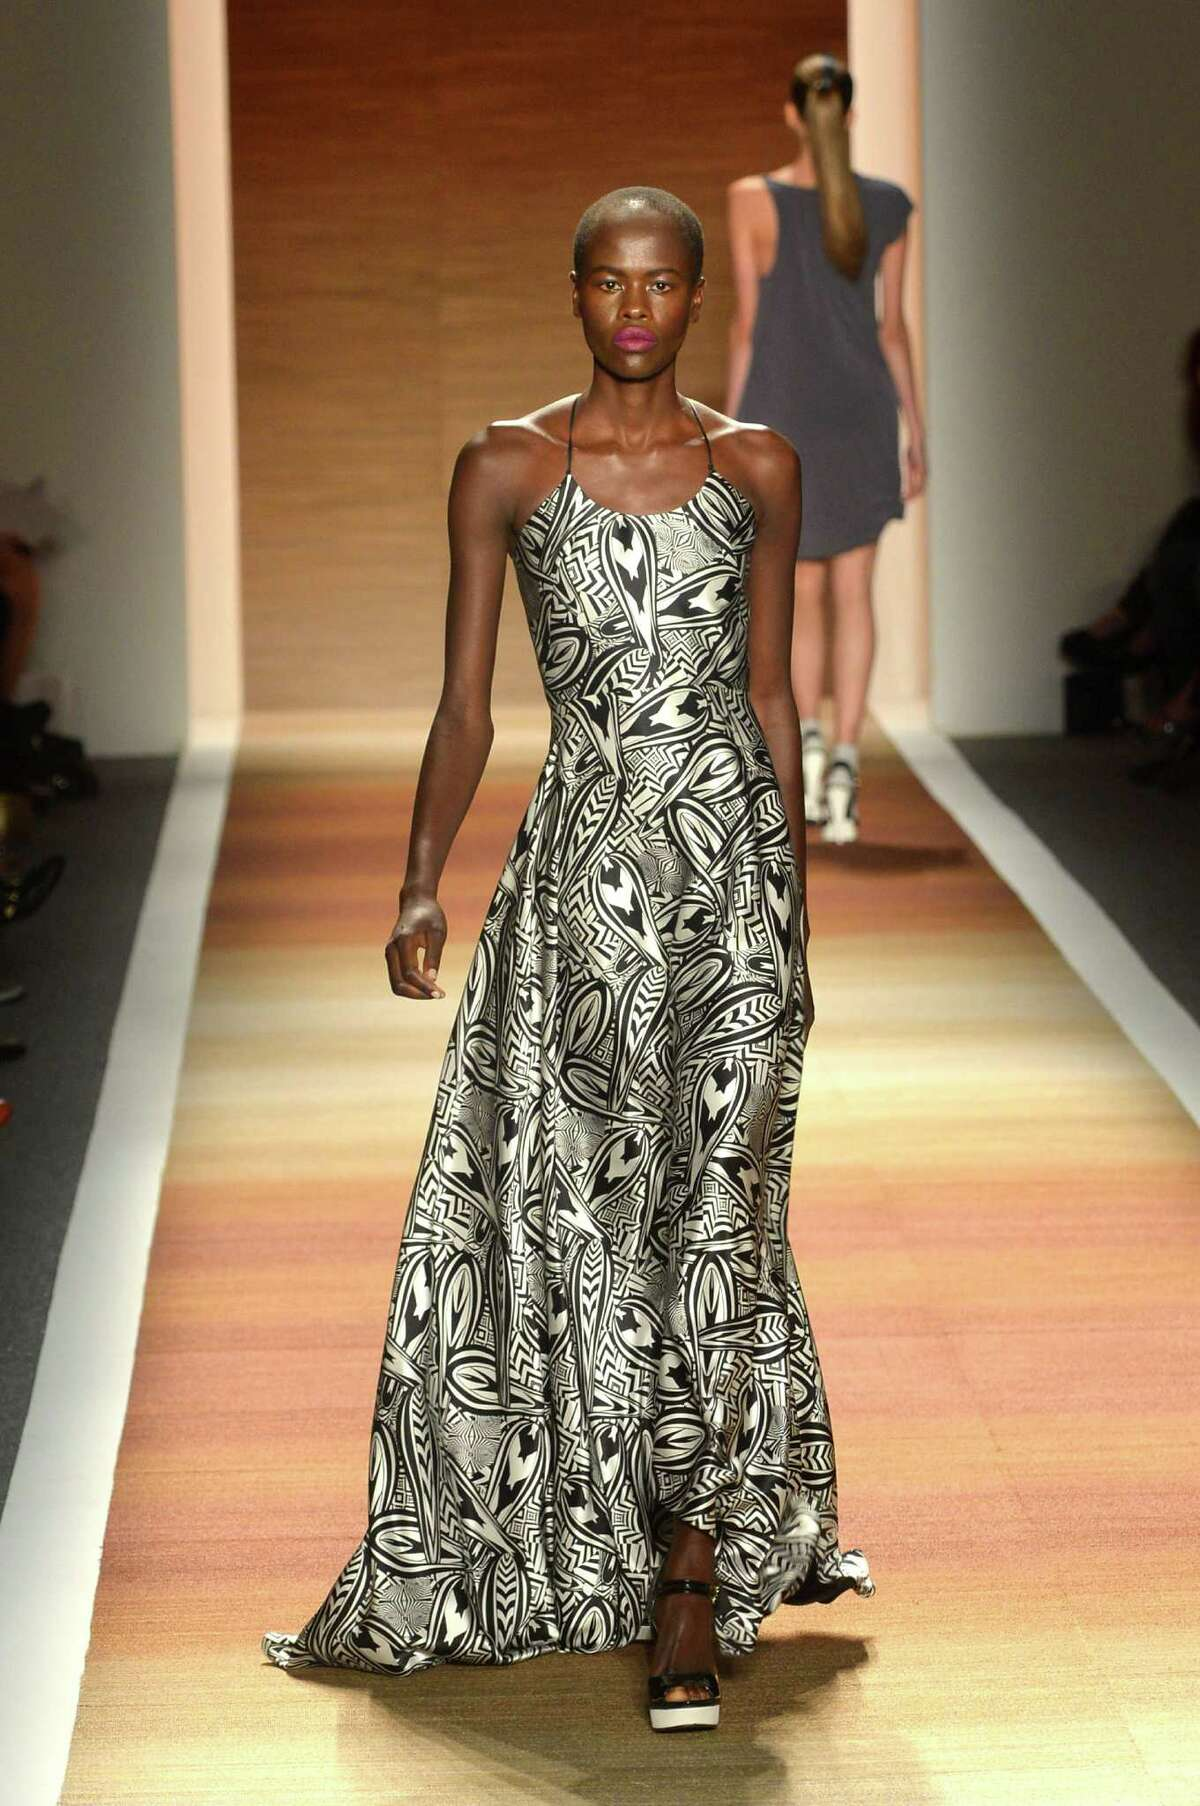 Cesar Galindo collection at NY Fashion Week for Thursday, Sept. 13. With Michael Quintanilla's sidebar to NYfashionMain.